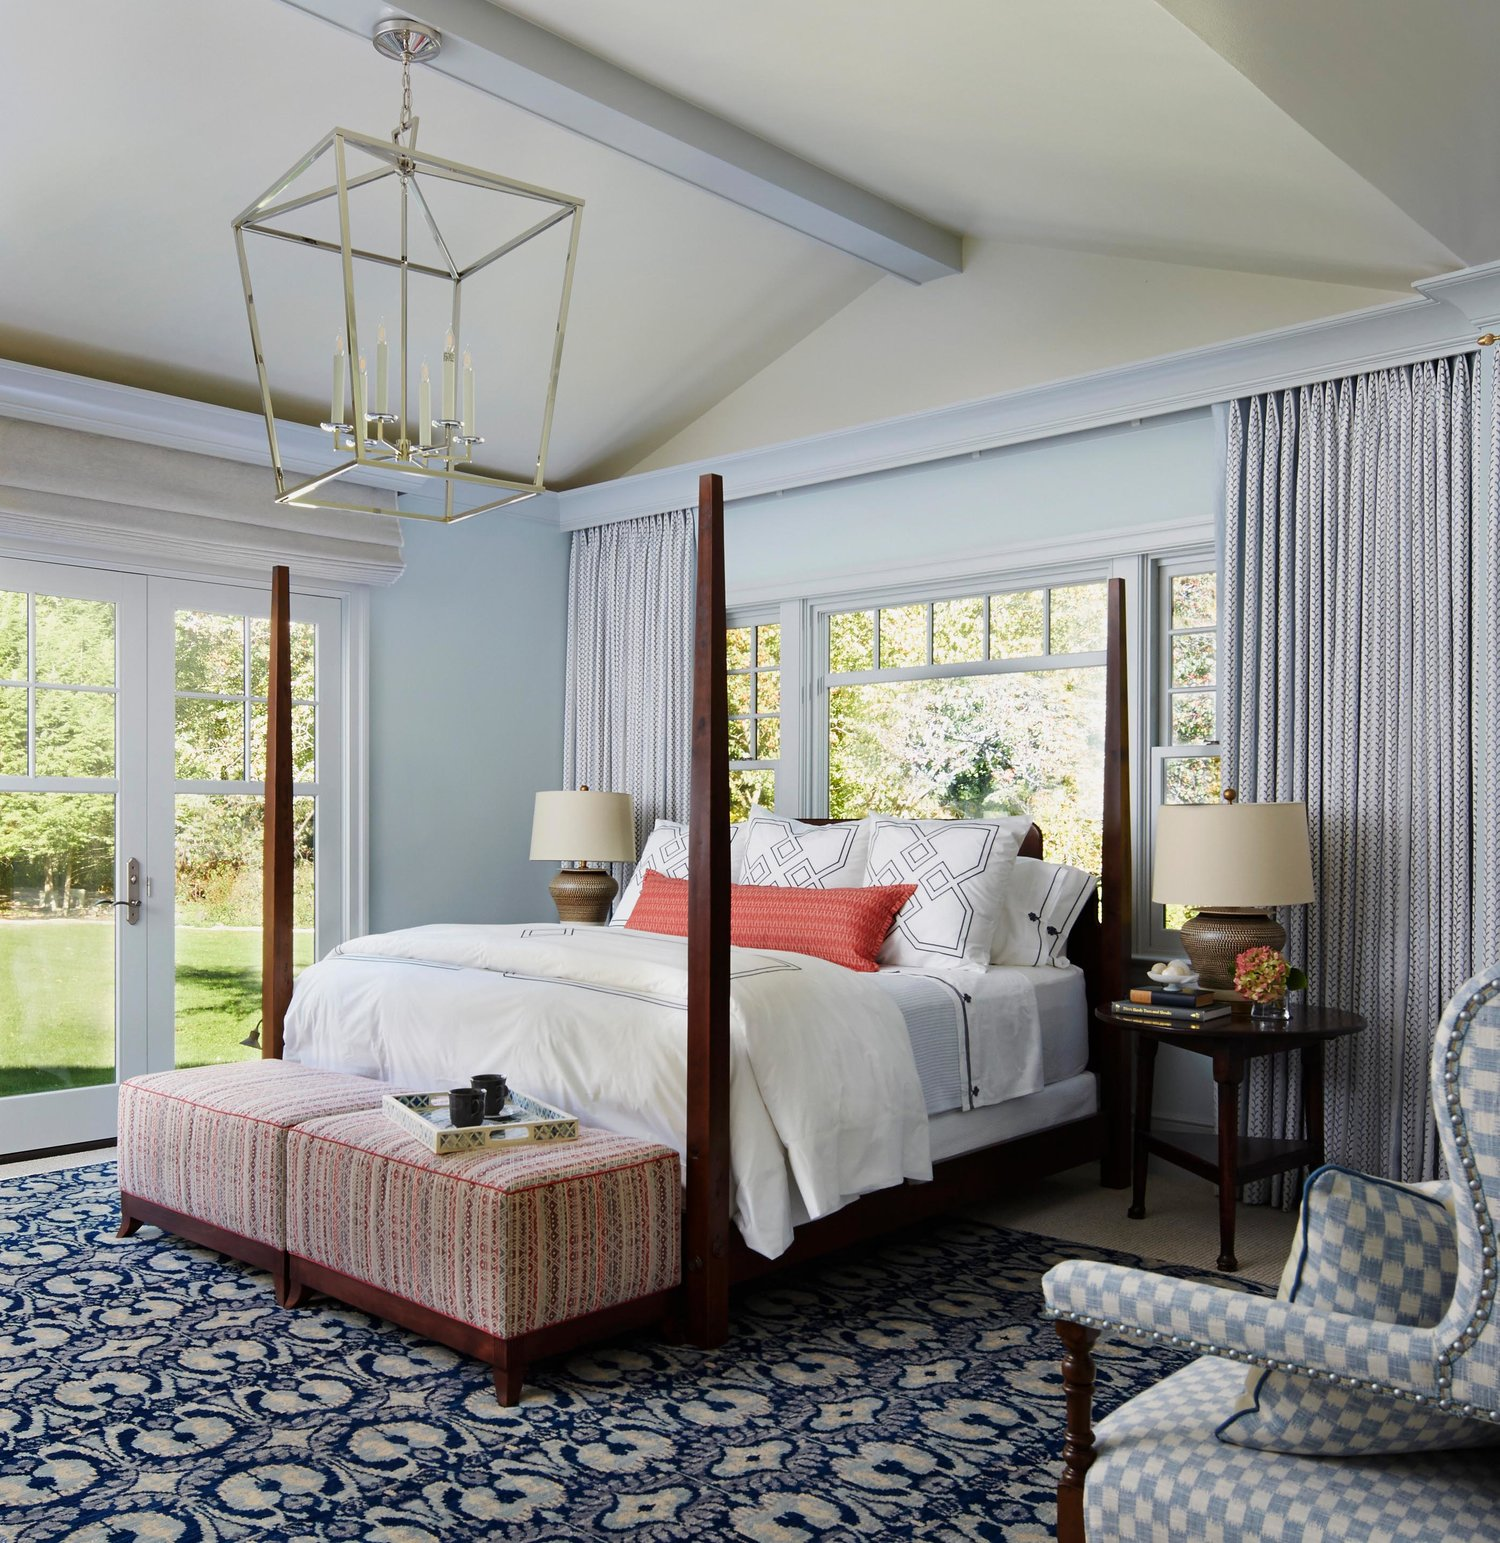 Traditional style bedroom with blue and pops of coral. Come see more interior design inspiration from Elizabeth Drake. Photo by Werner Straube. #interiordesign #classicdesign #traditionaldecor #housetour #elizabethdrake